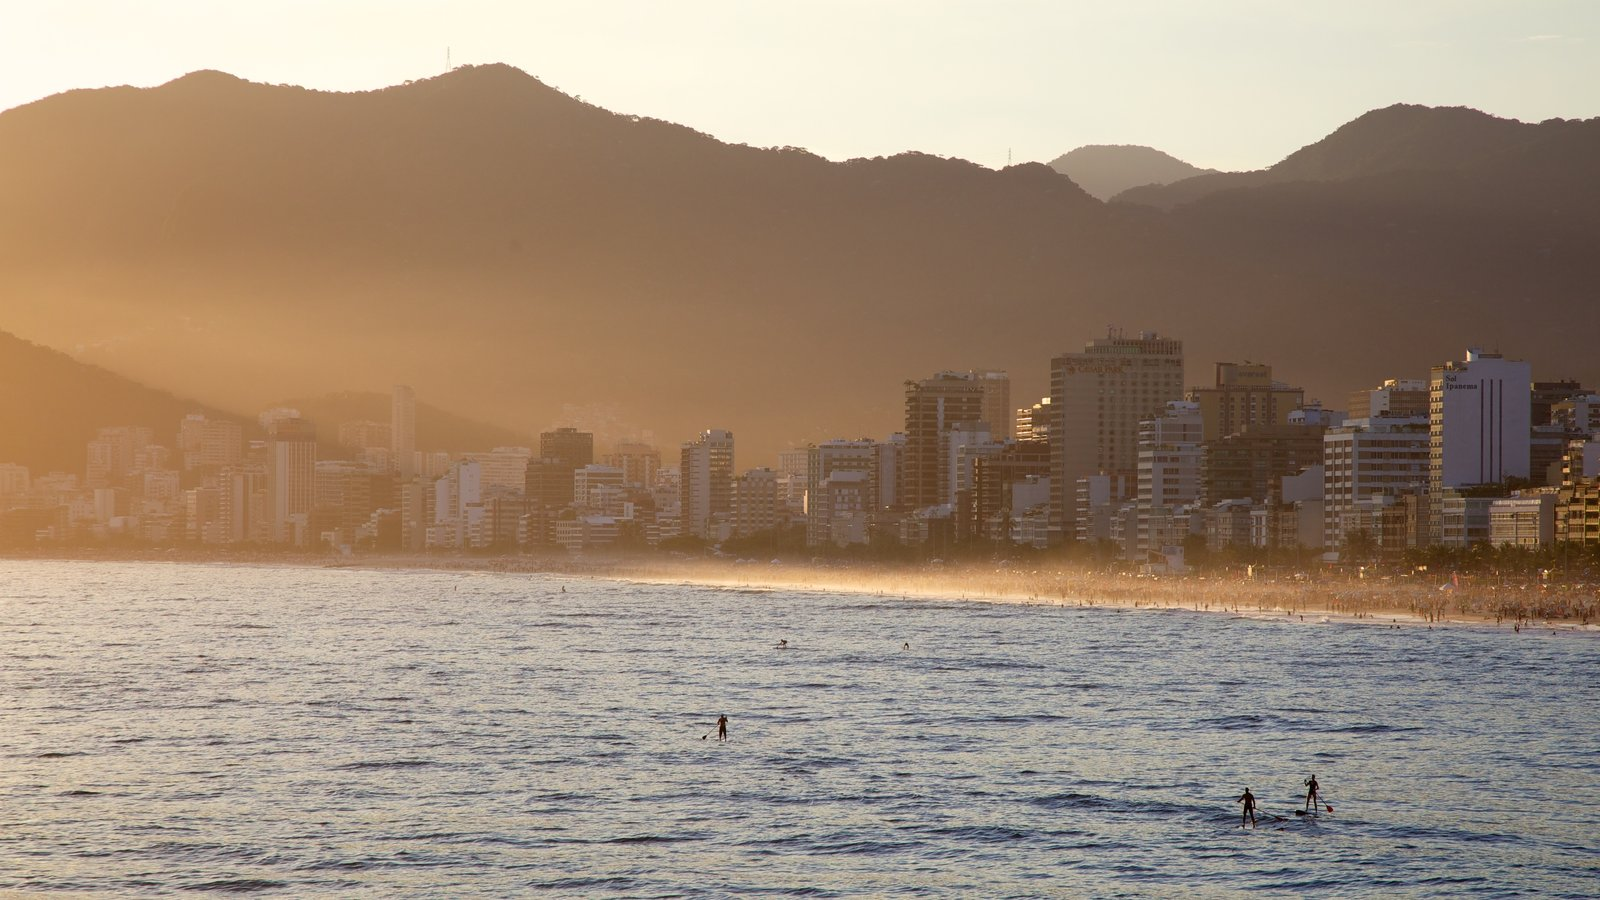 Rio de Janeiro showing general coastal views, a sunset and a city